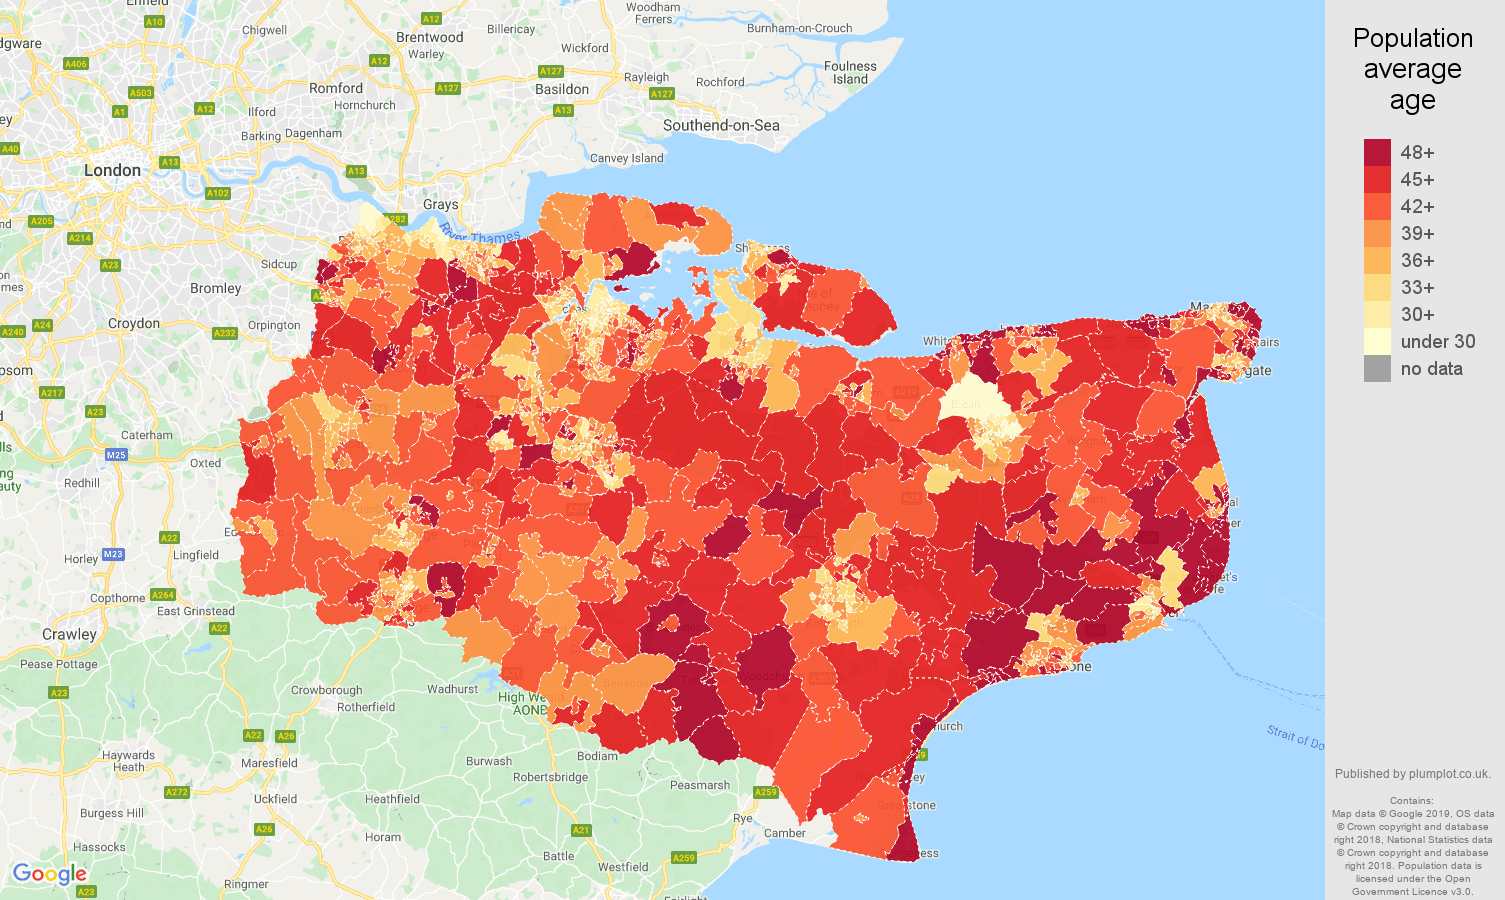 Kent population average age map